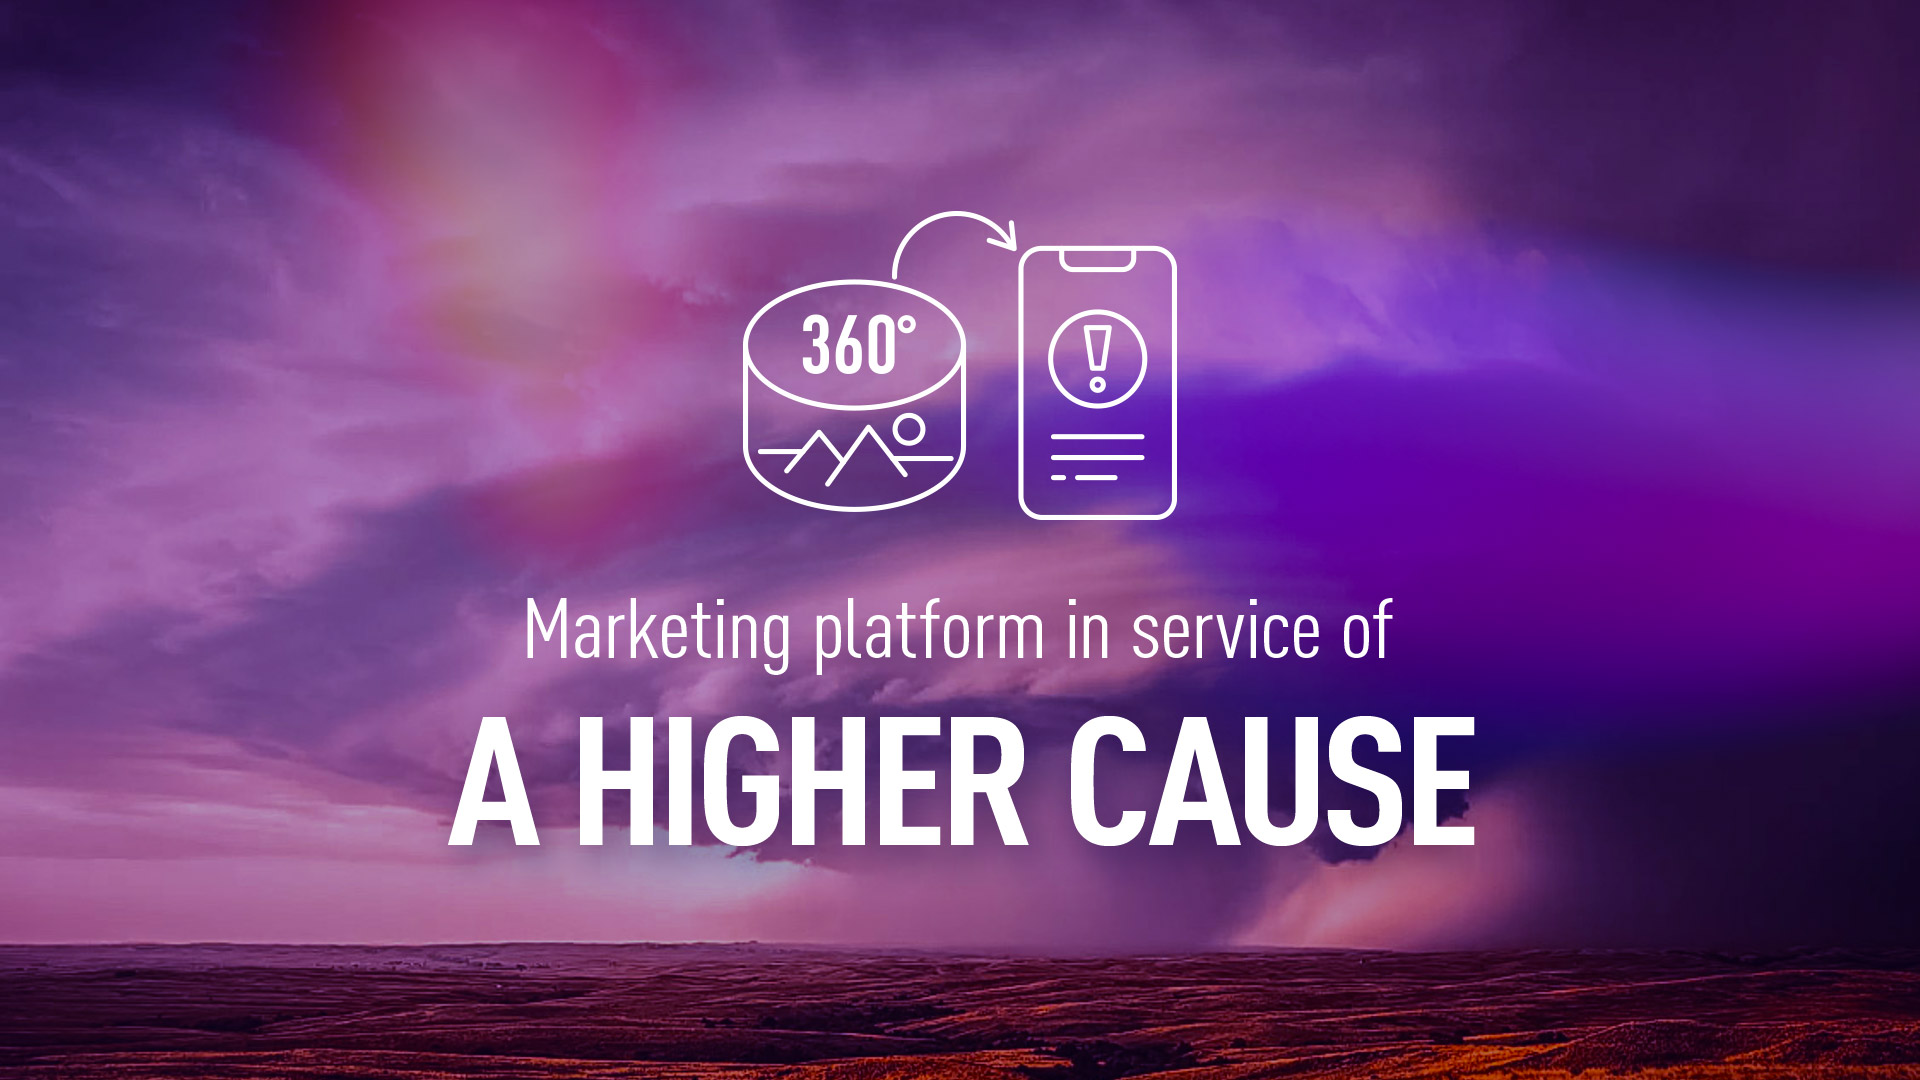 Real-time marketing platform in a service of a higher cause